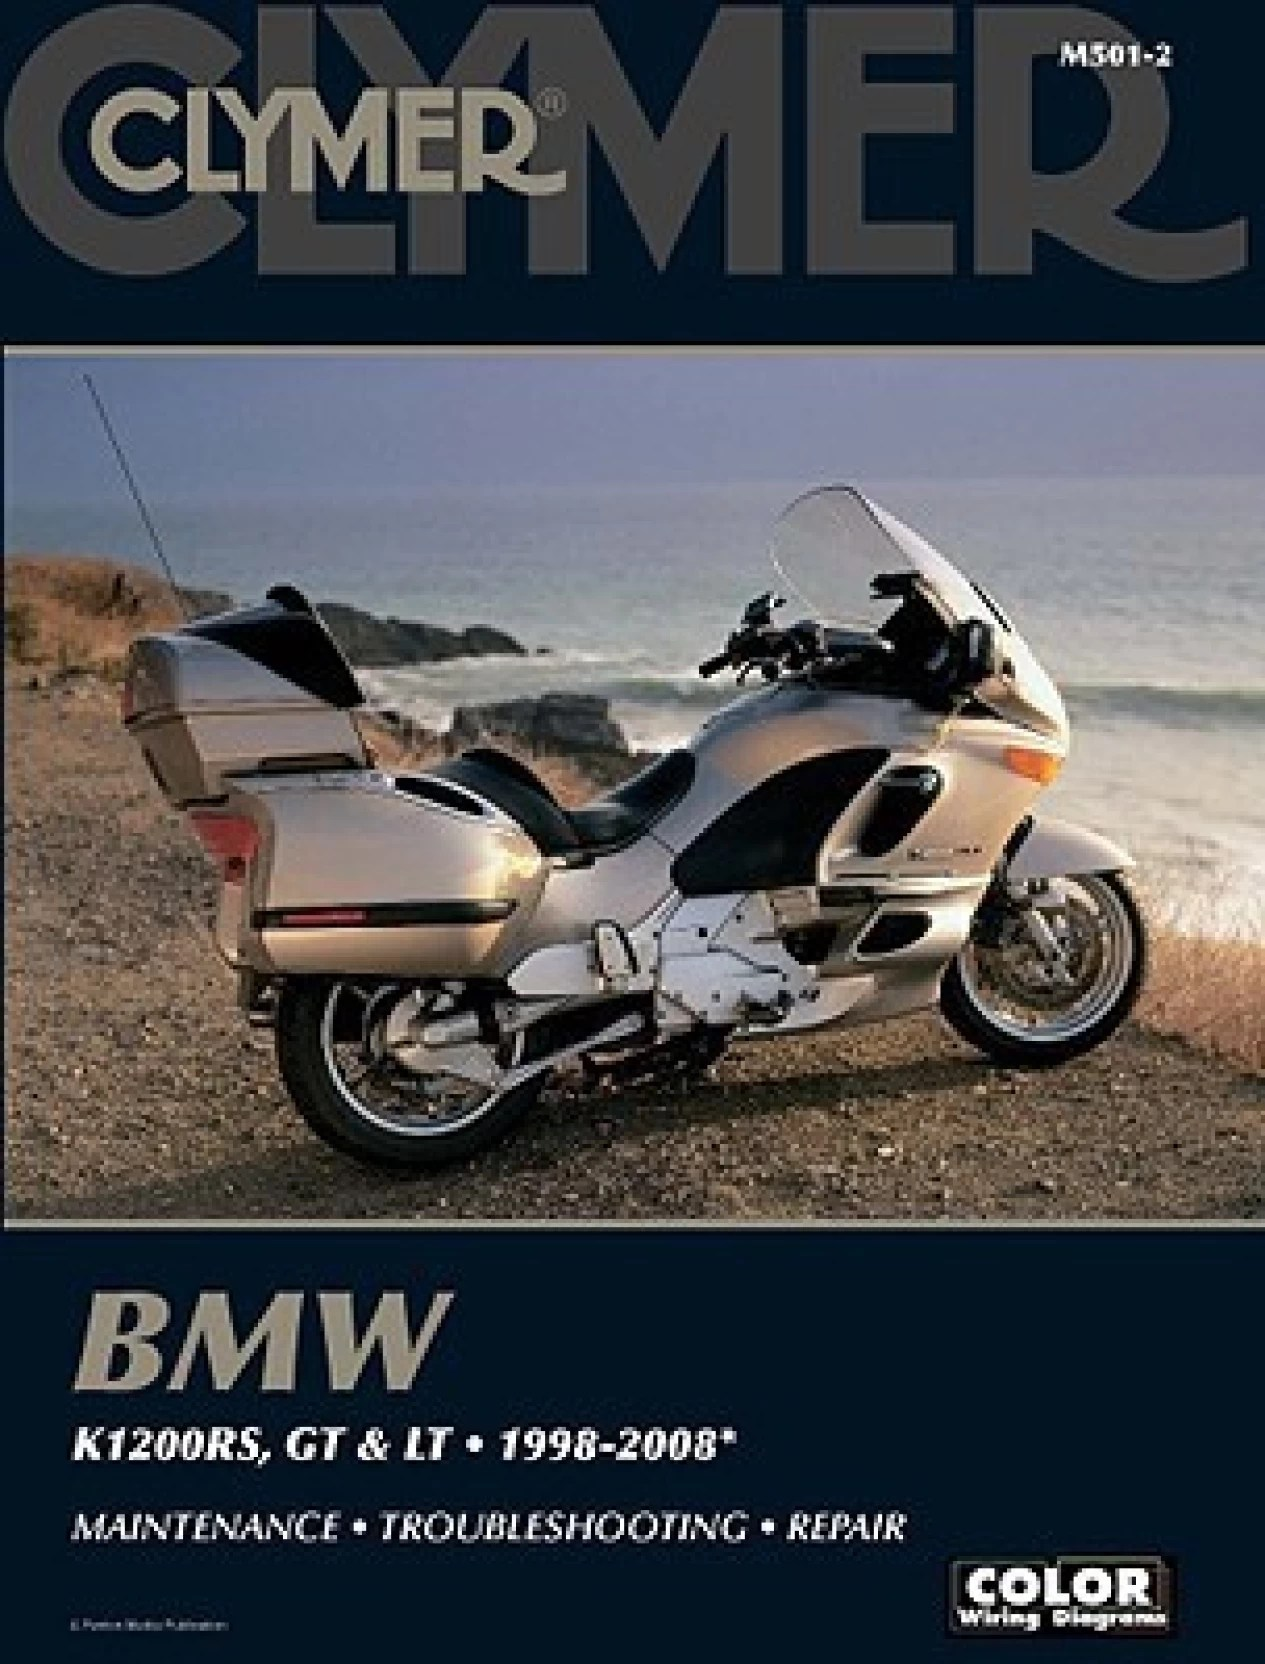 medium resolution of bmw k1200rs gt lt 1998 2008 clymer color wiring diagrams english paperback james grooms